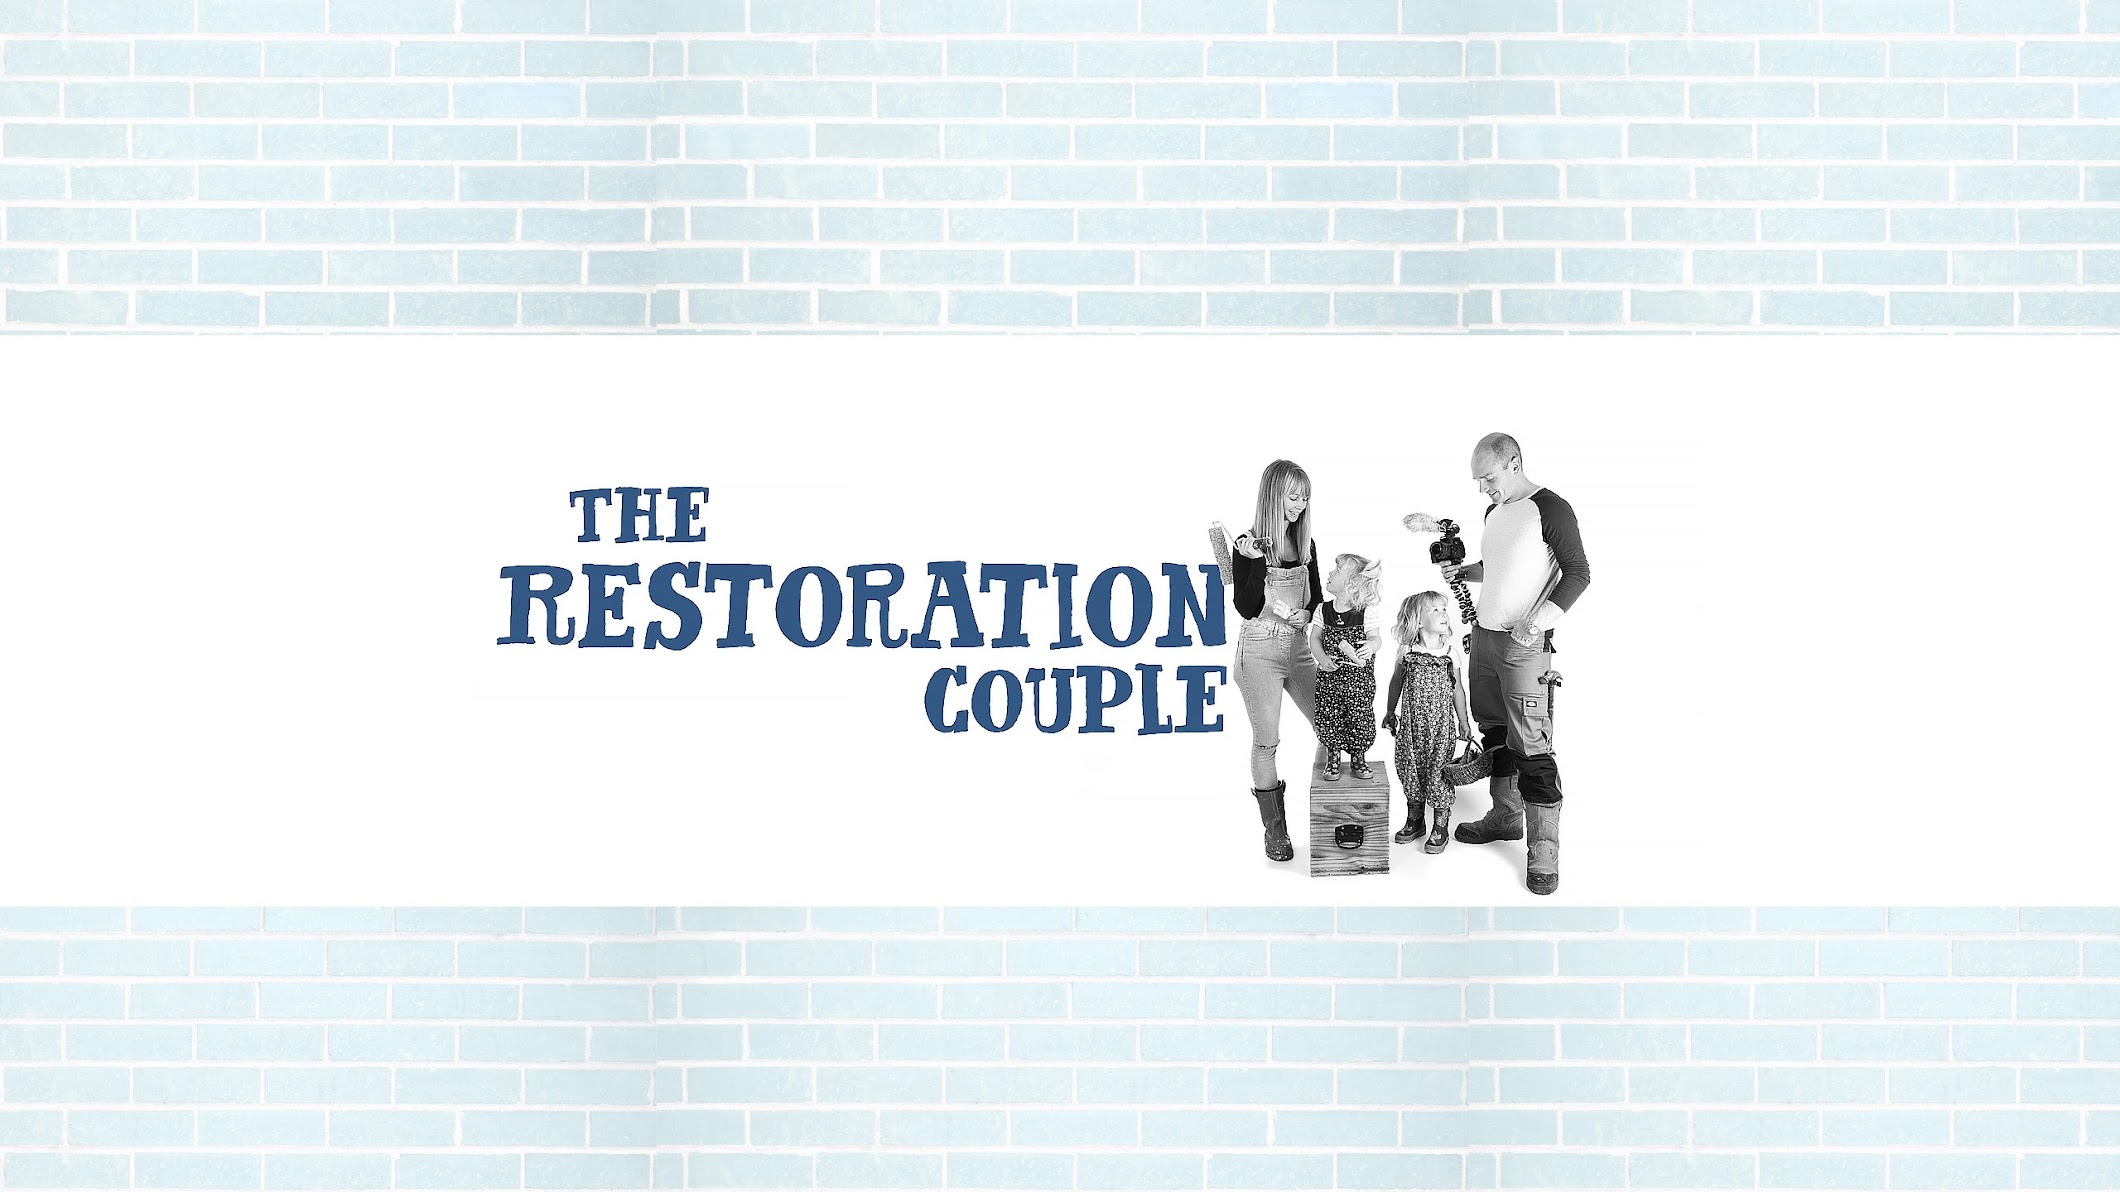 The Restoration Couple